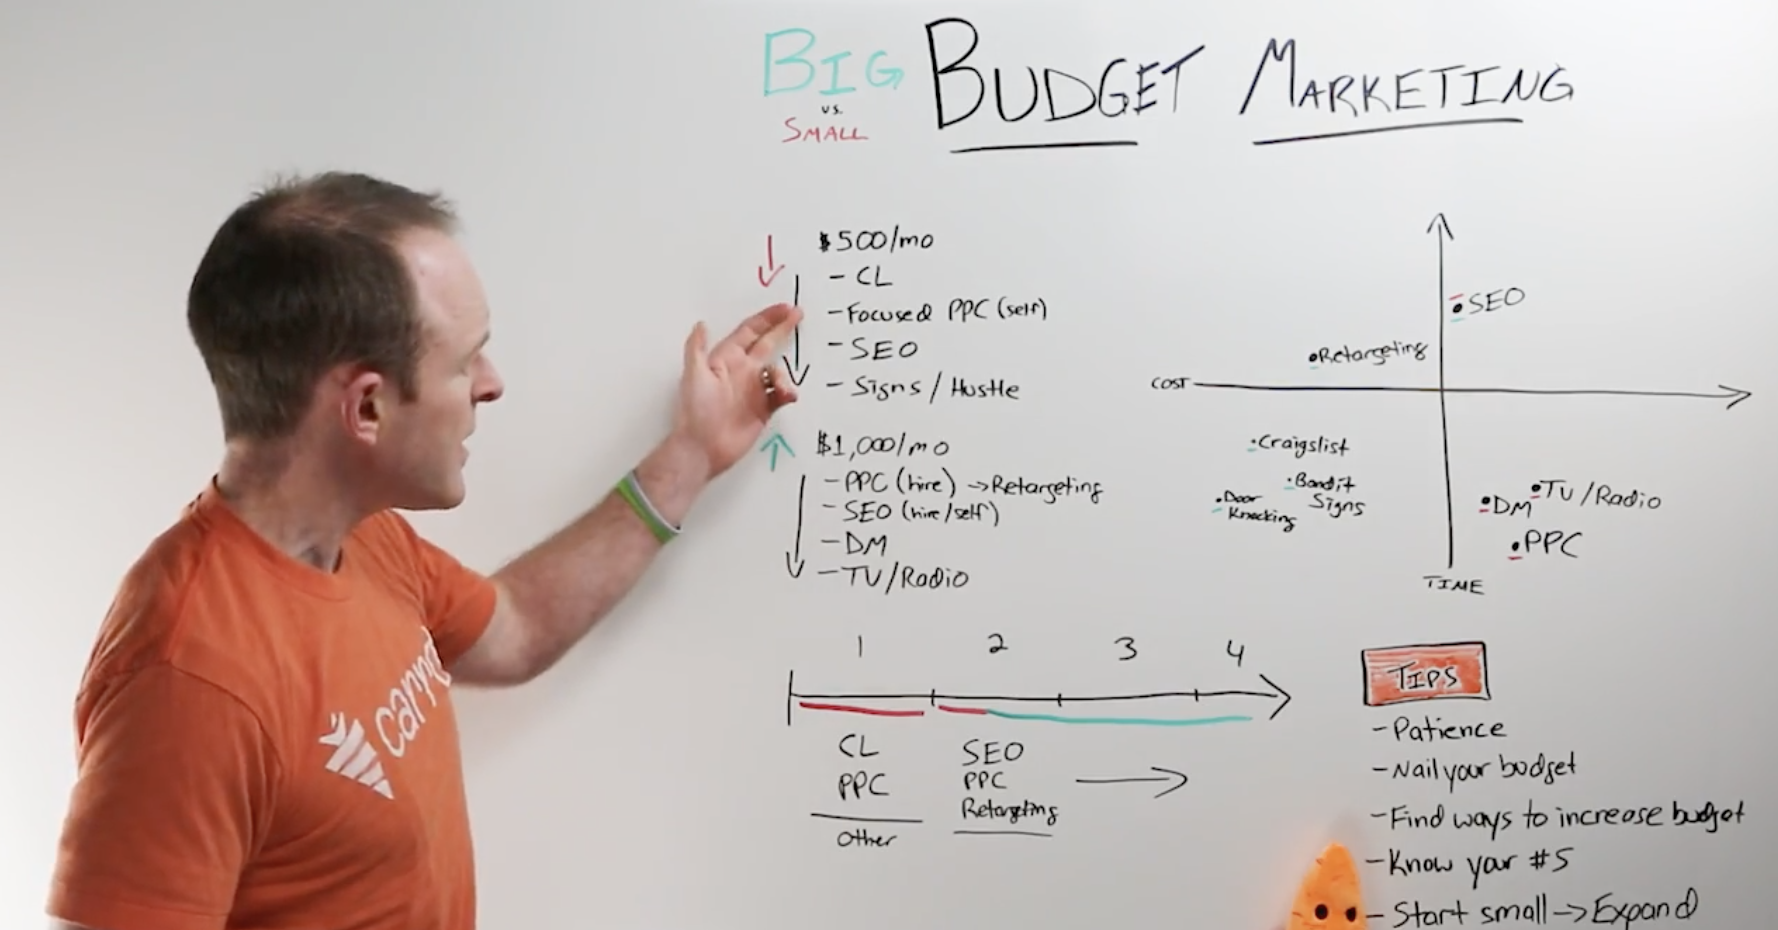 Real Estate Marketing Budgets - PPC